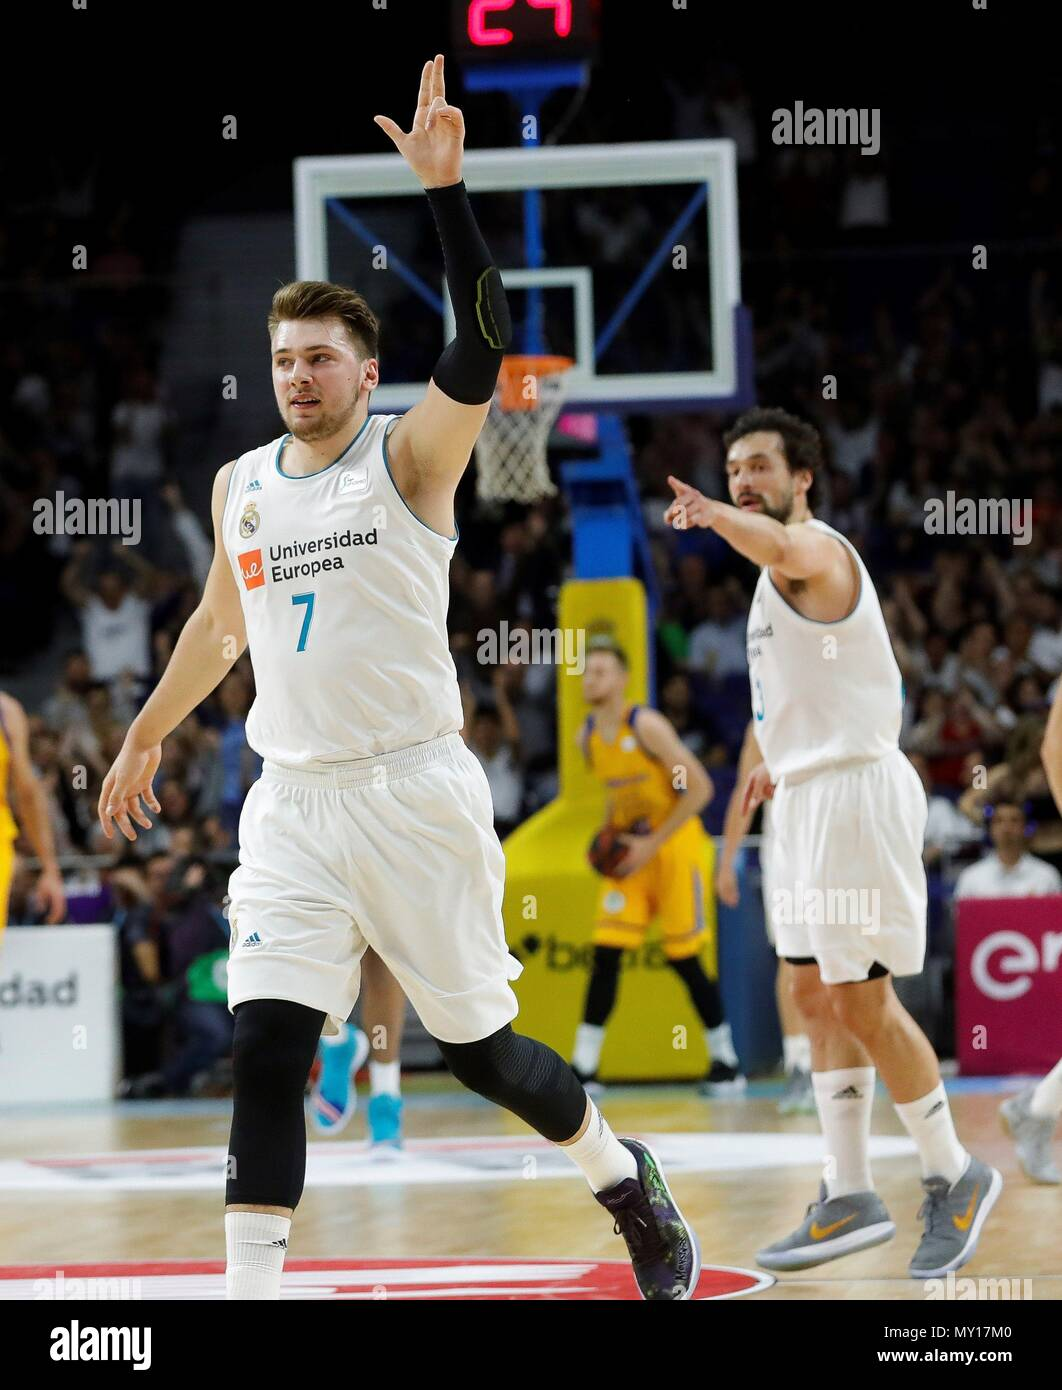 edc2743b9 Real Madrid s Luka Doncic during the second ACB League playoff semifinal match  between Real Madrid and Herbalife Gran Canaria at the Wizink Center in  Madrid ...